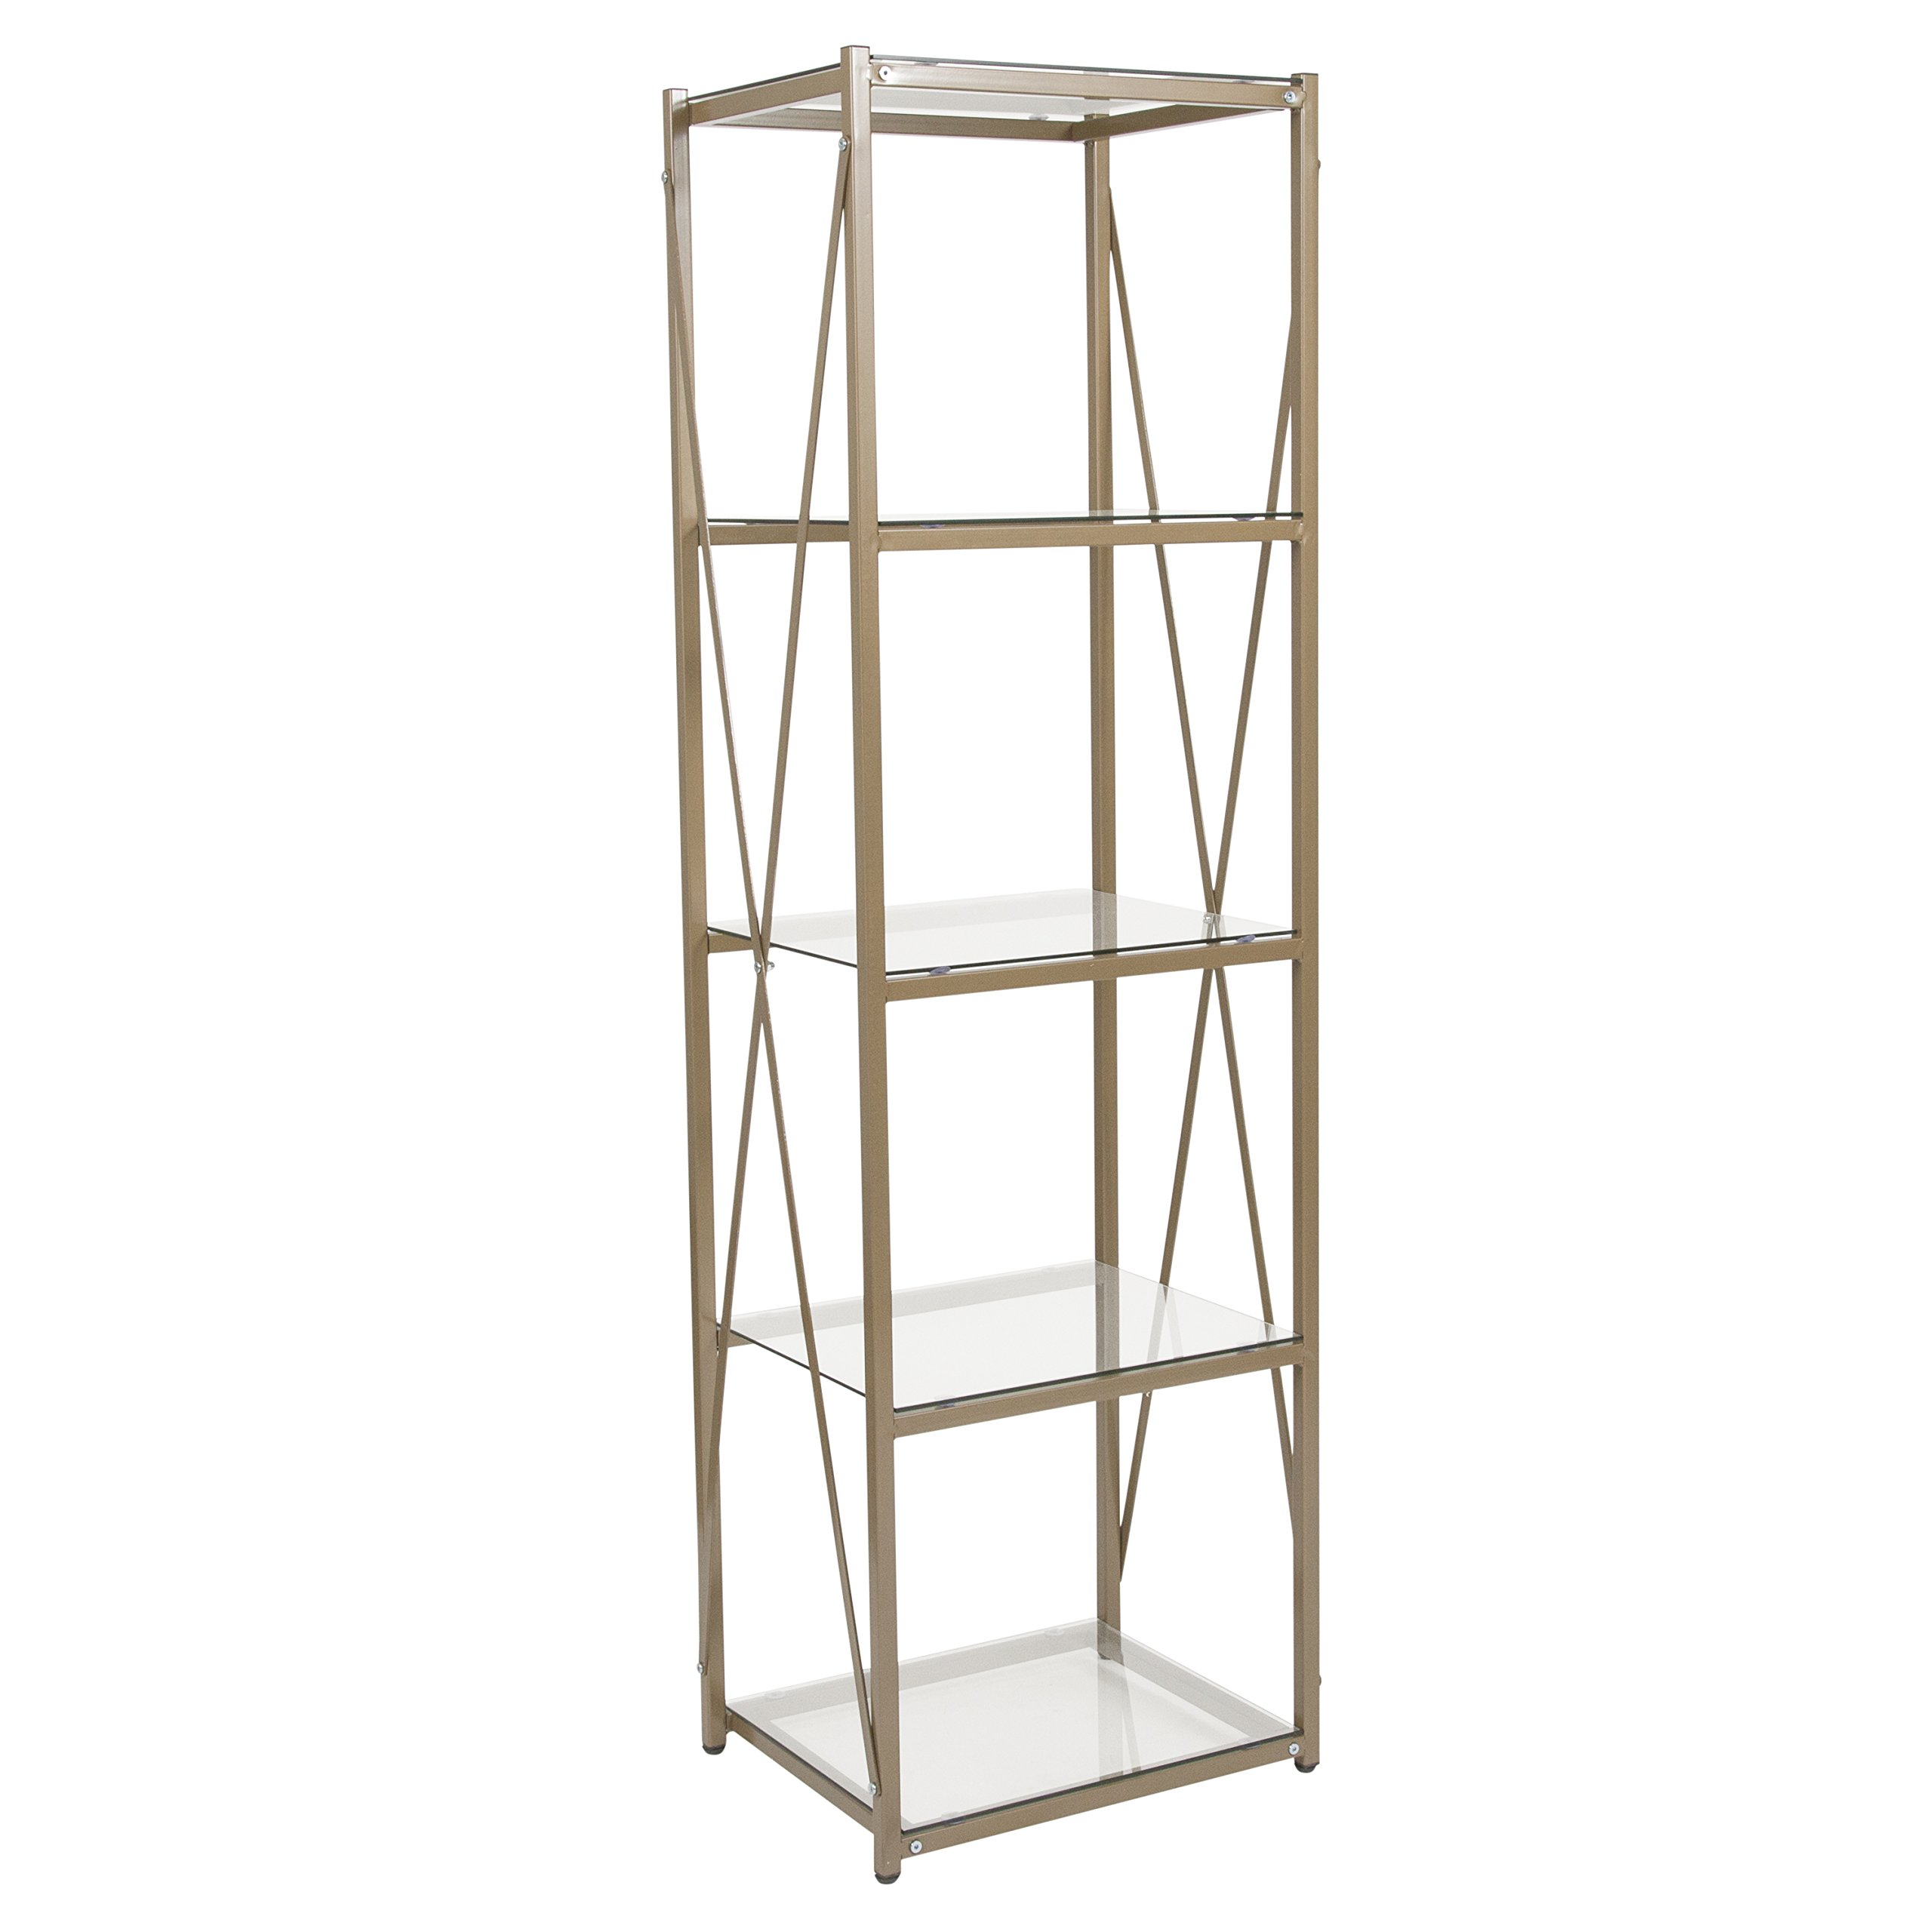 Flash Furniture Mar Vista Collection 4 Shelf 64''H Cross Brace Glass Bookcase in Matte Gold by Flash Furniture